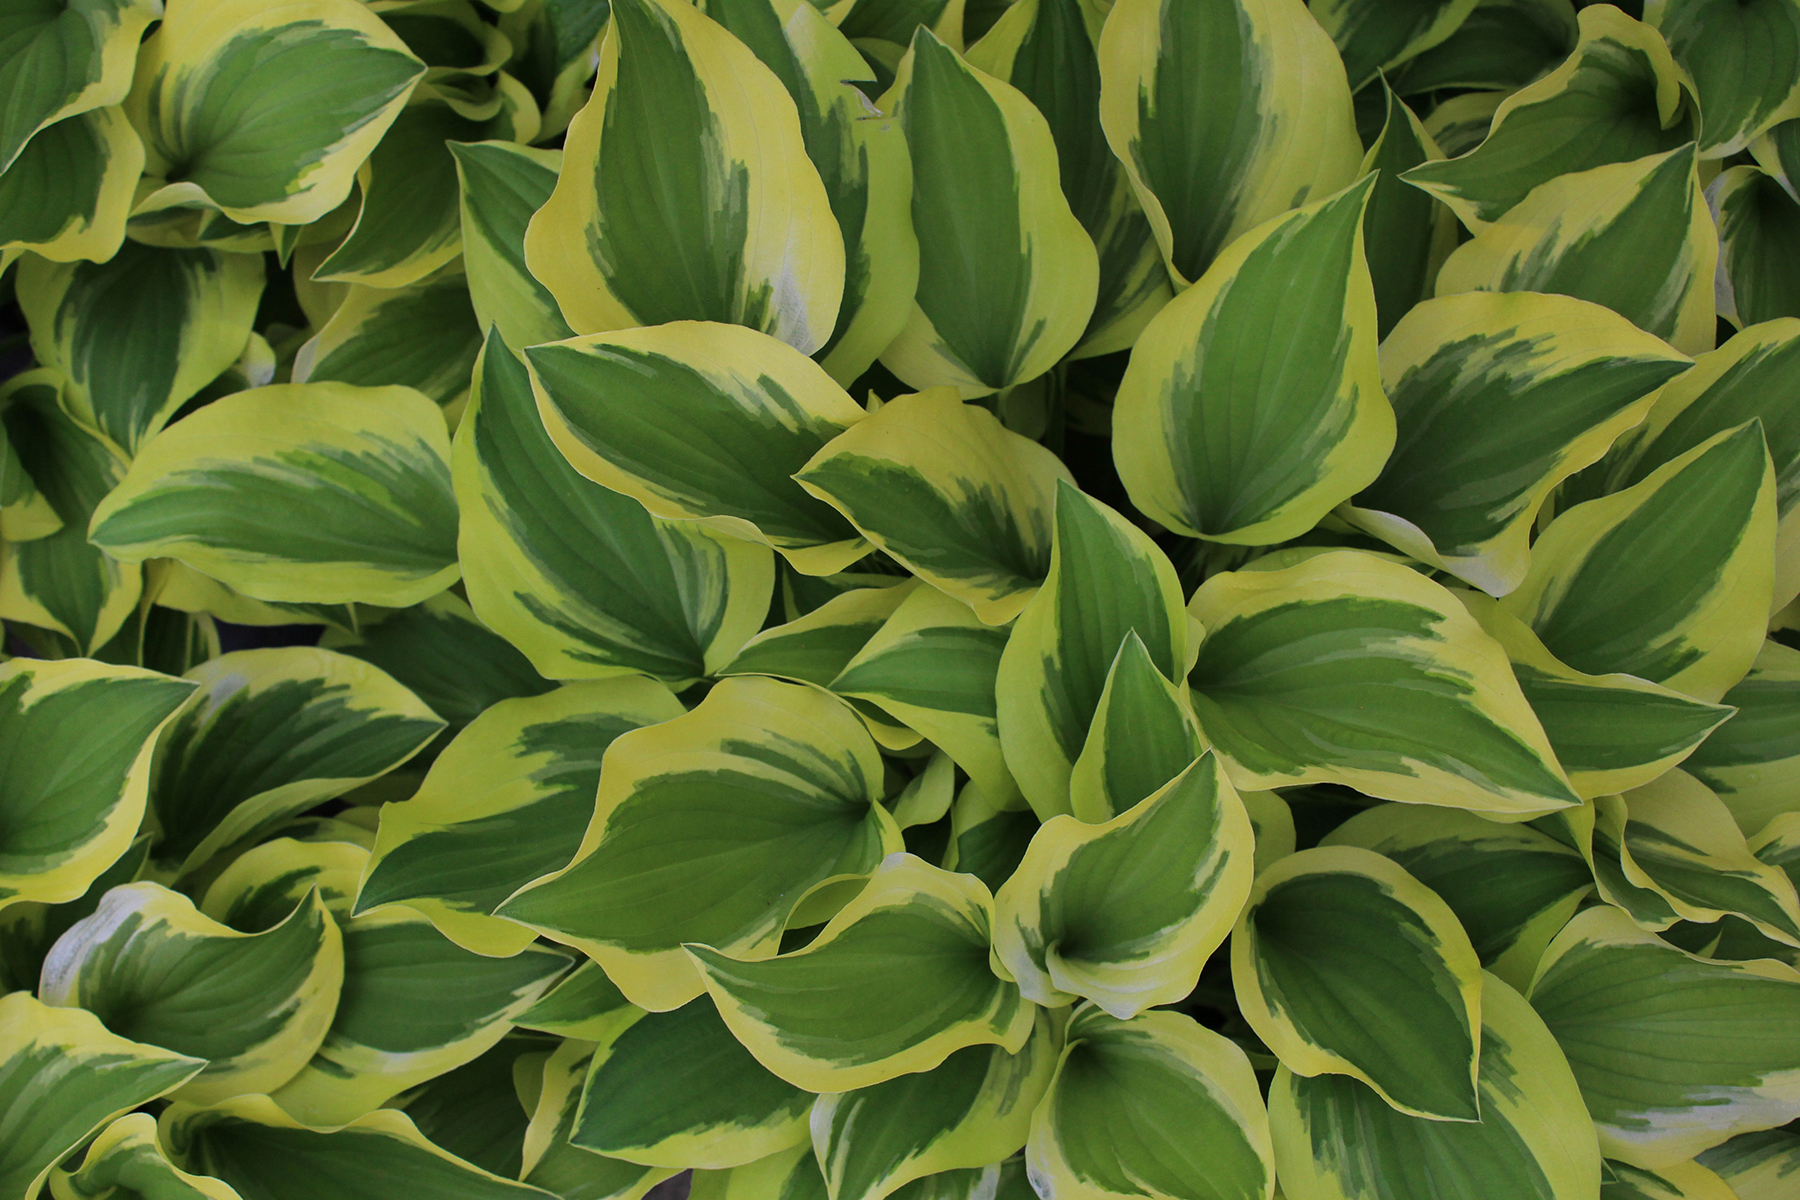 Primarily Grown For Their Foliage Hostas Comes In Hundreds Of Diffe Varieties From Light Green To Blue Leaves Plants Tolerant Full Sun Deep Shade